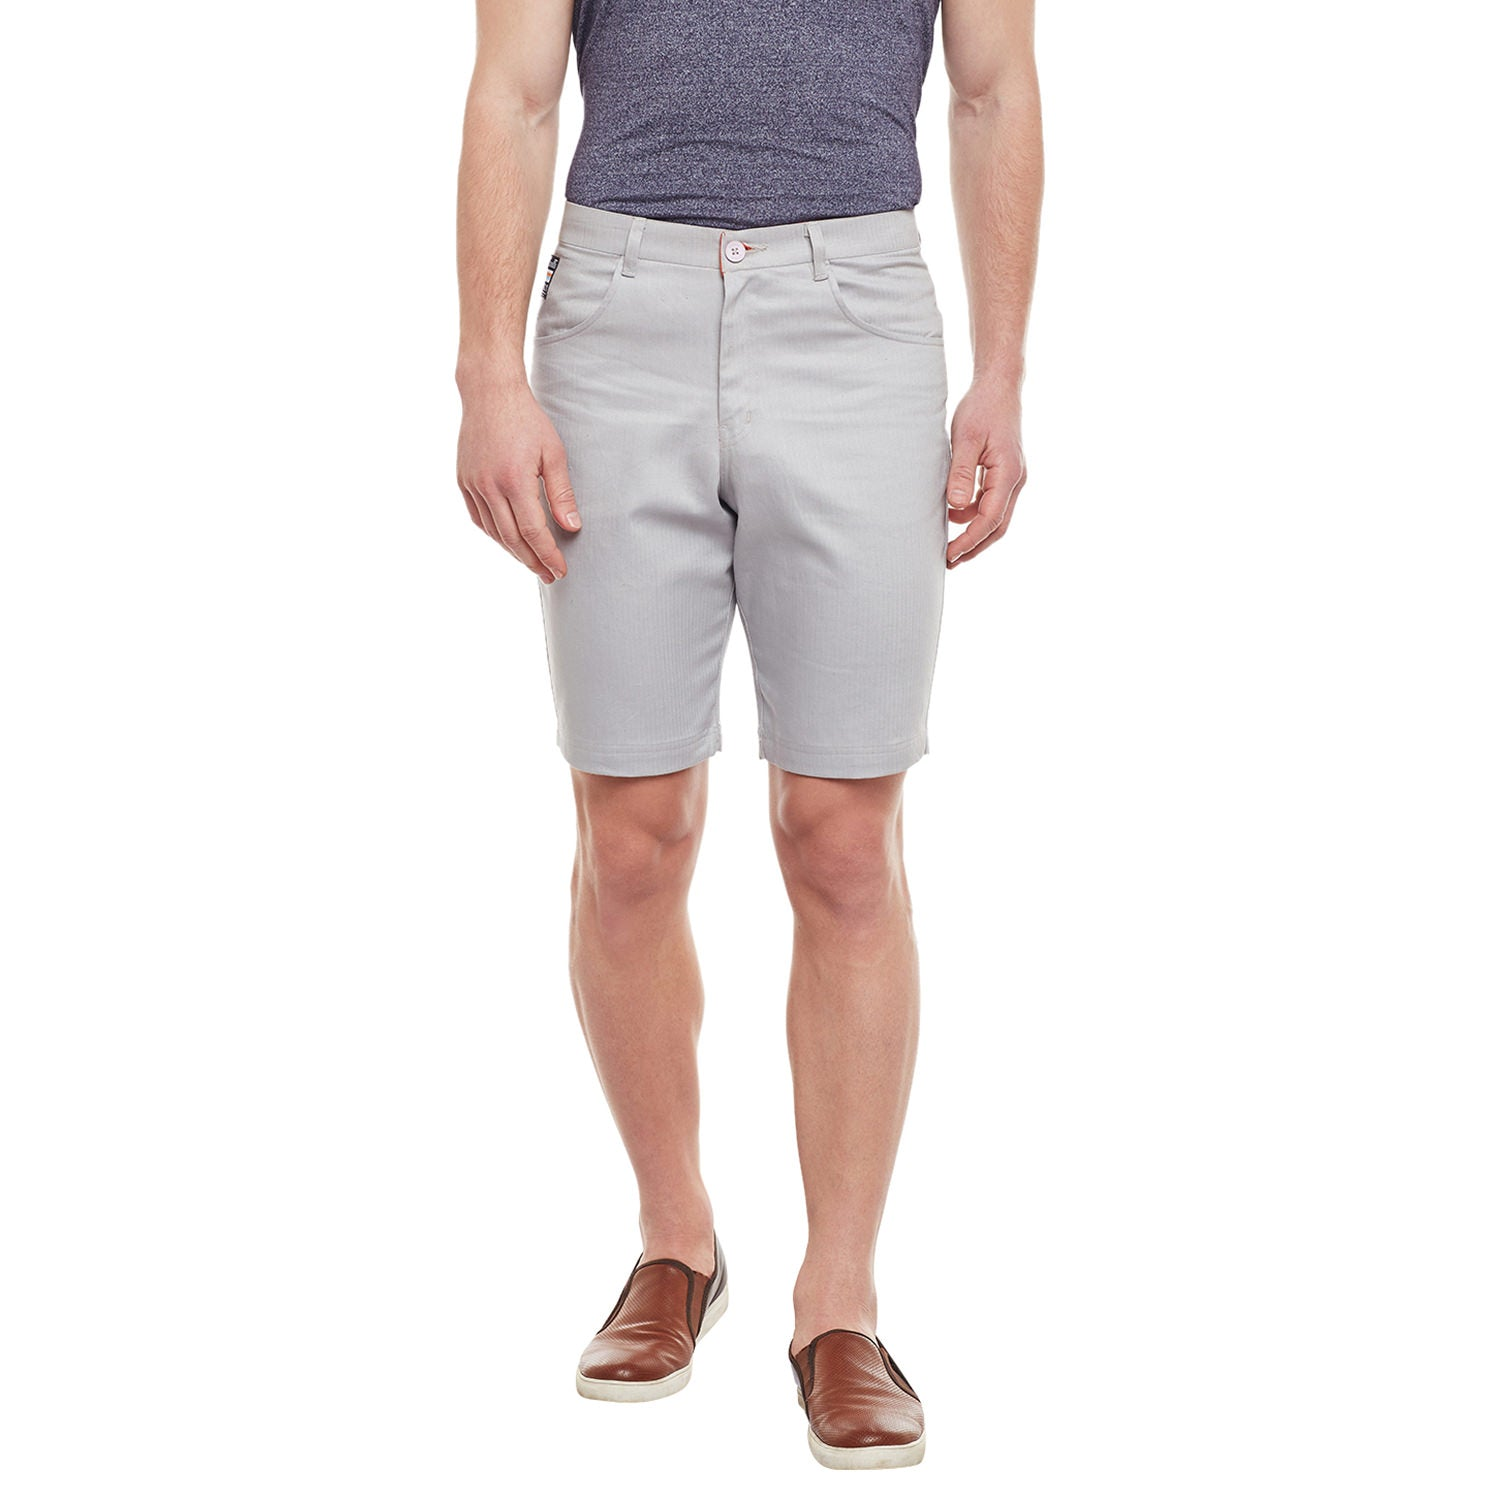 Atorse Mens Light Grey Solid Woven Cotton Shorts